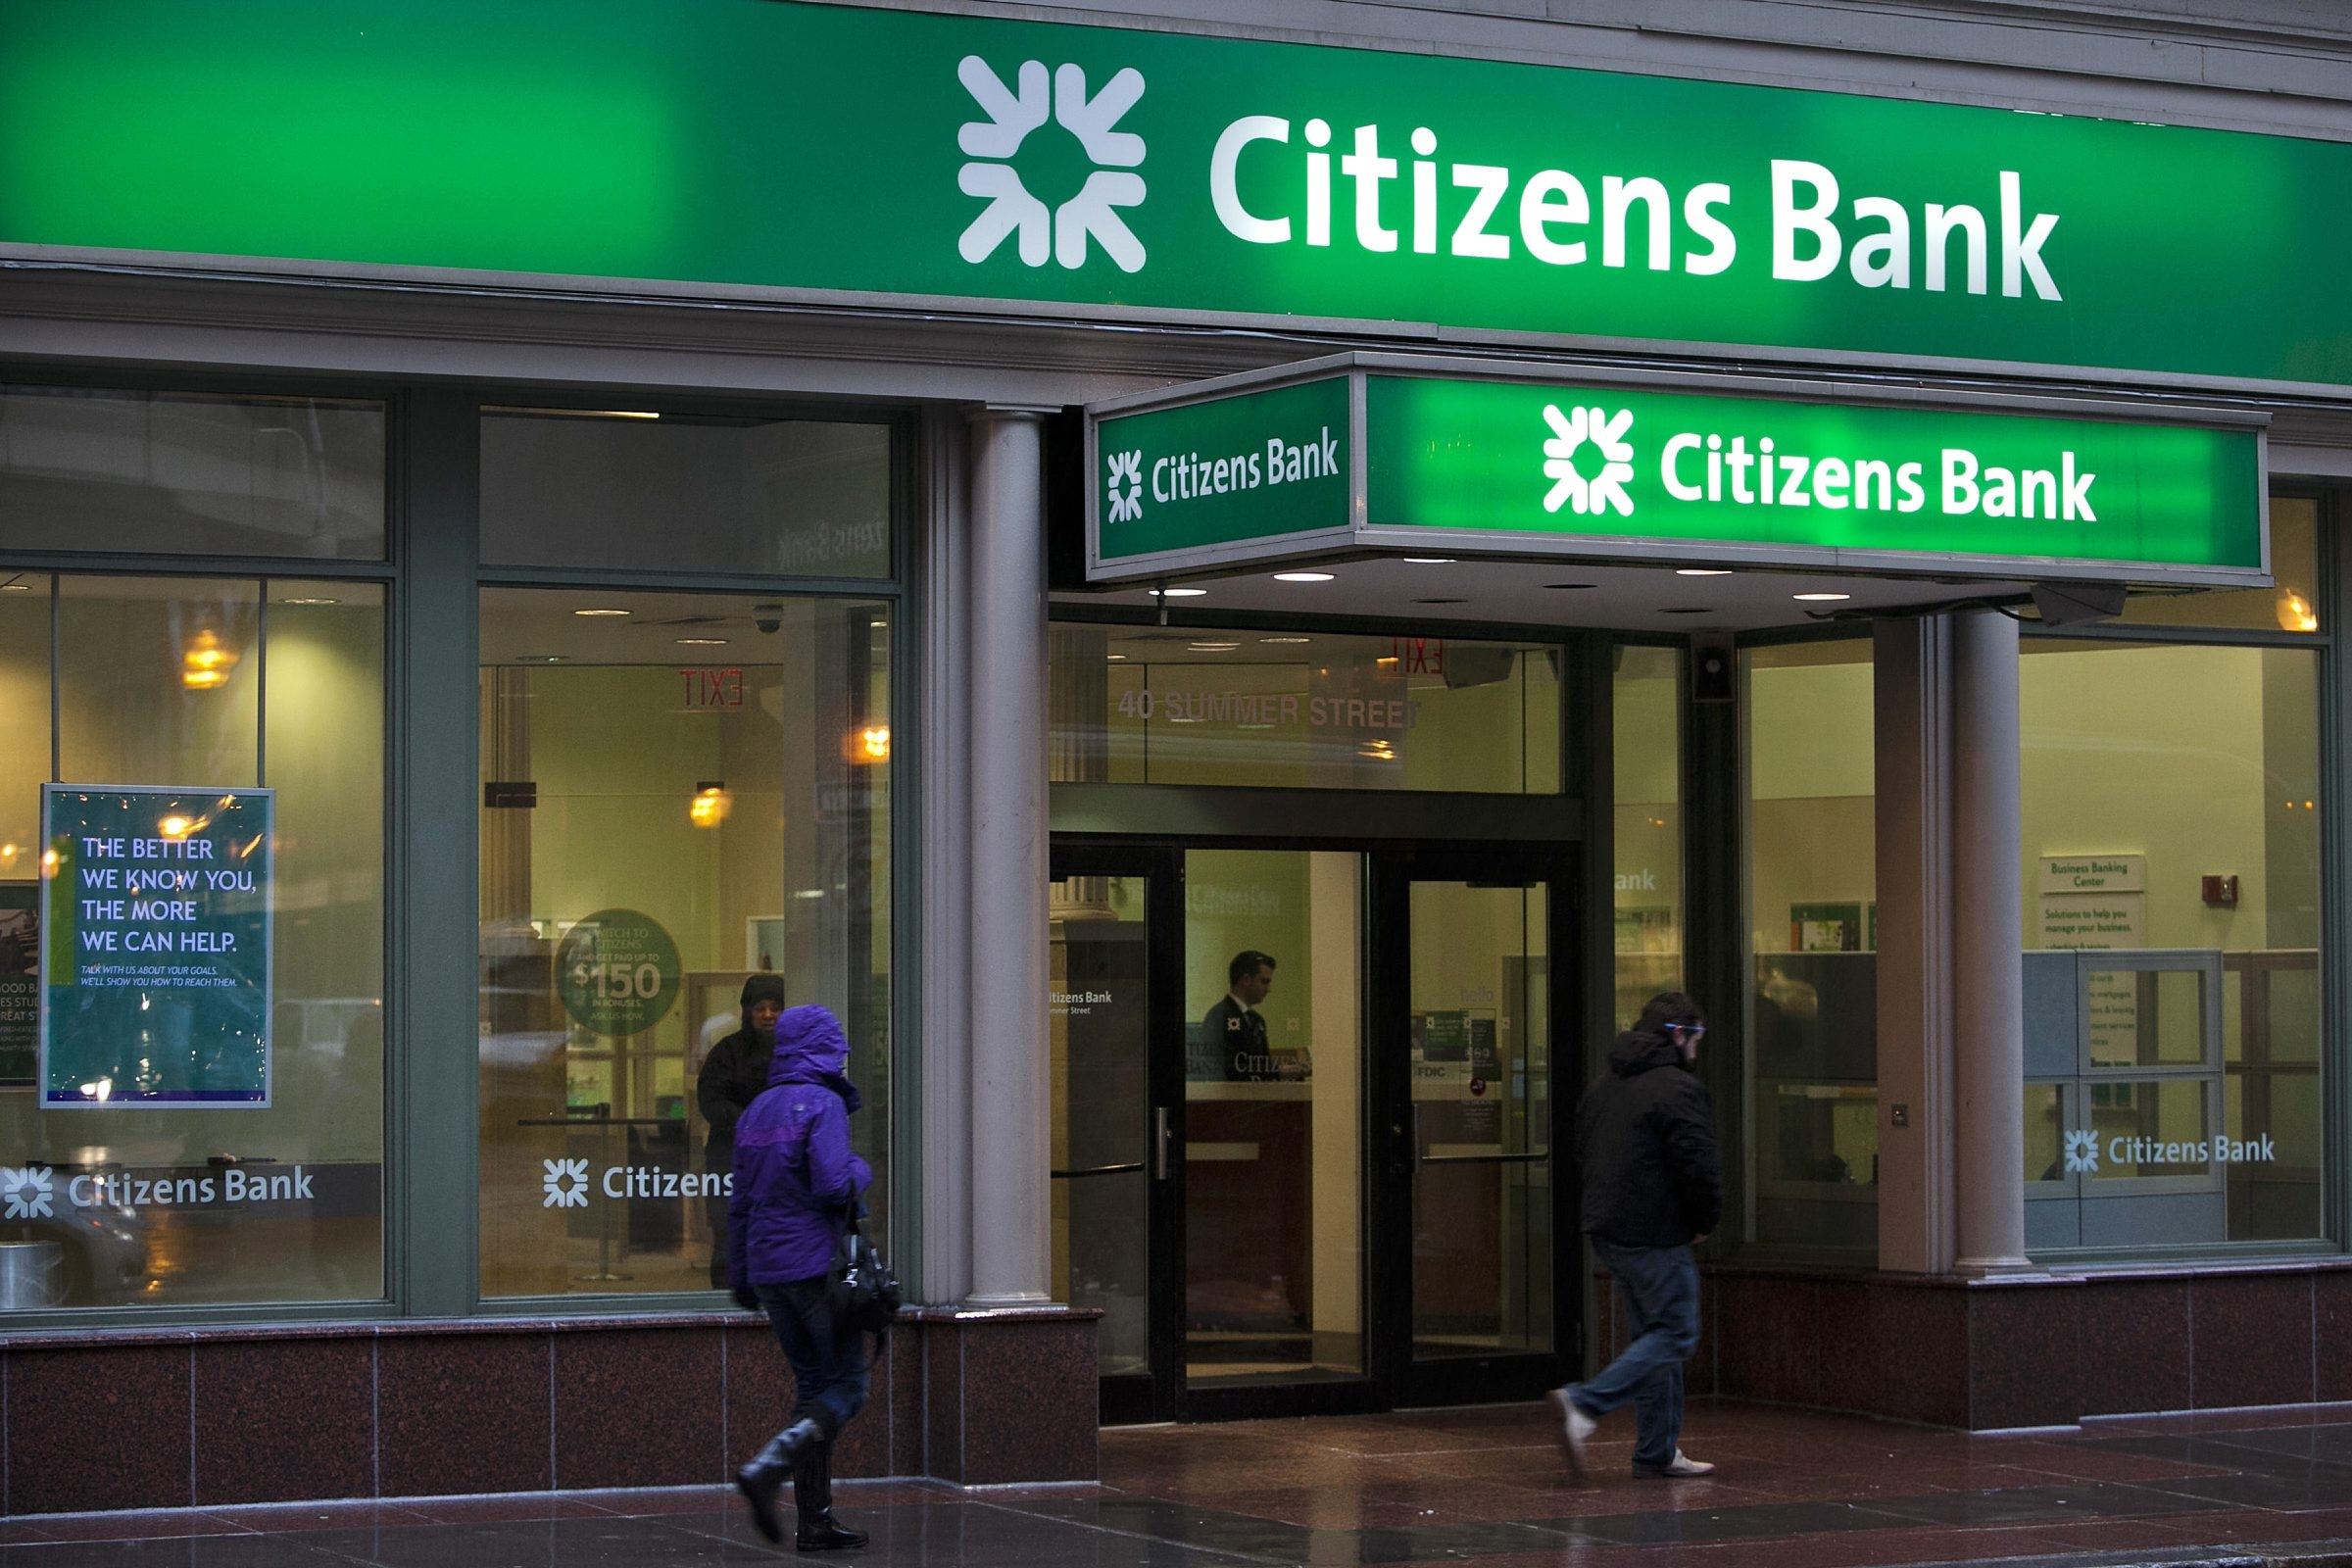 The Royal Bank of Scotland said it will accelerate its divestiture of Citizens Bank.